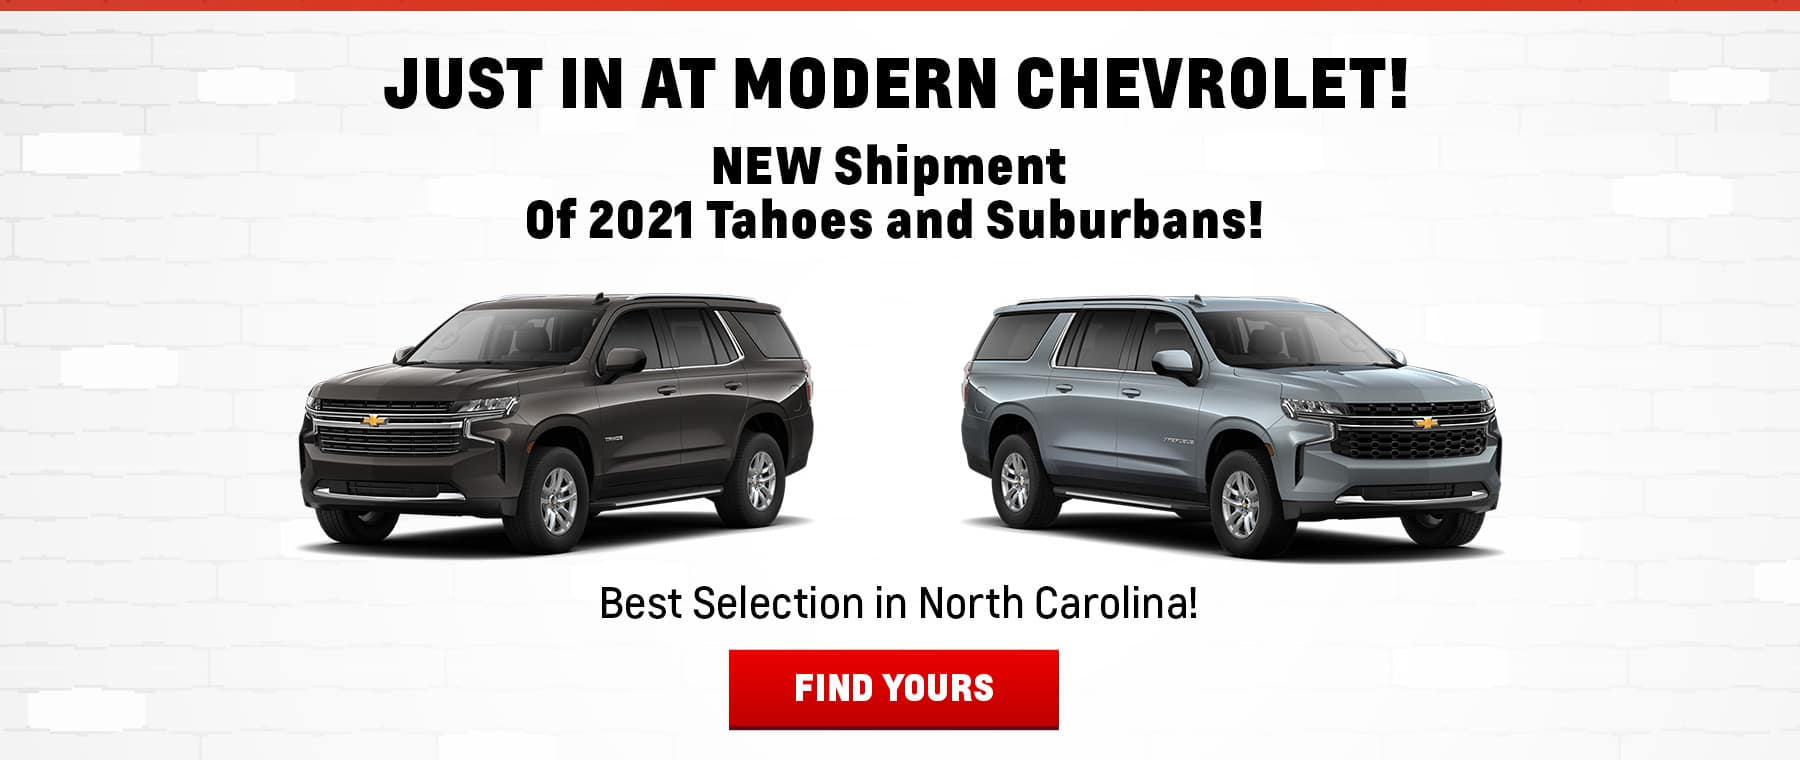 Just In at Modern Chevrolet!